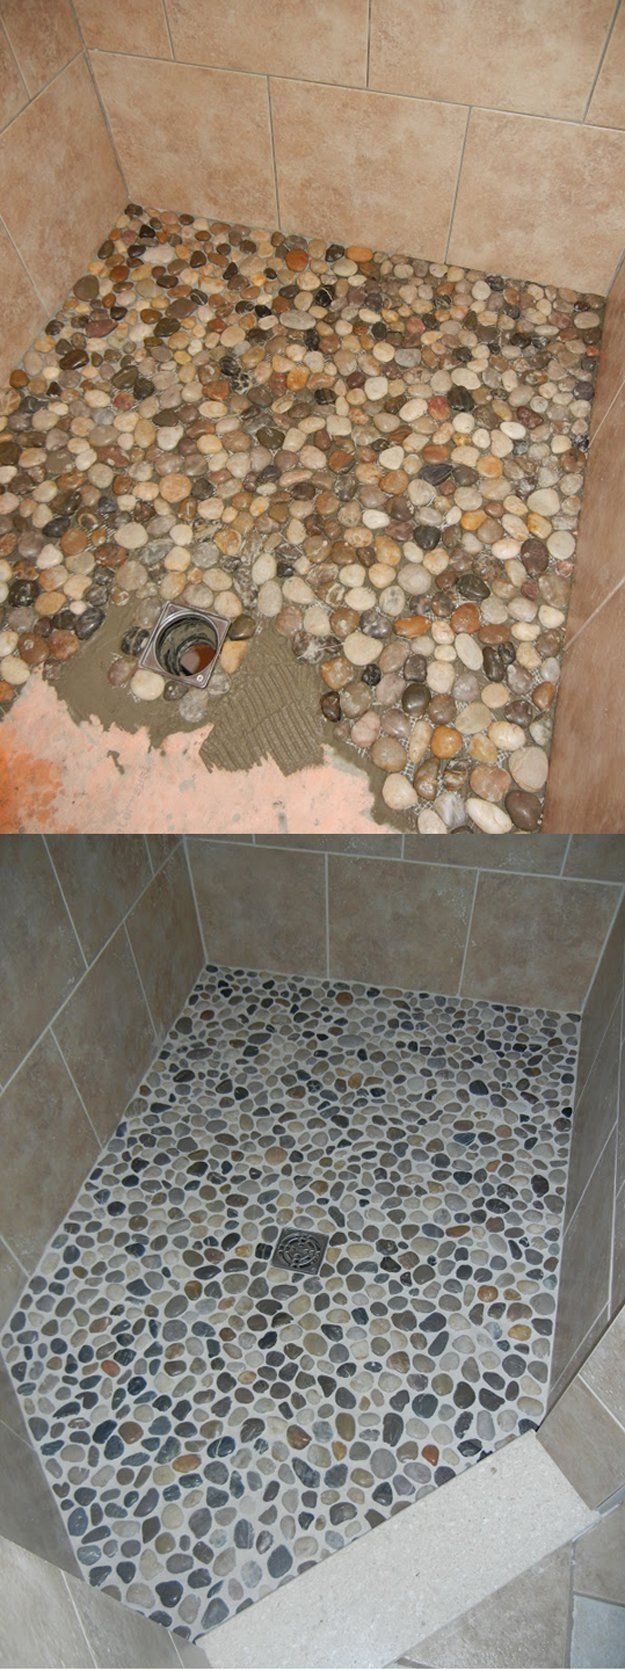 Give Your Shower Floor An Upgrade River Rocks And Grout | DIY Bathroom  Makeover Project |